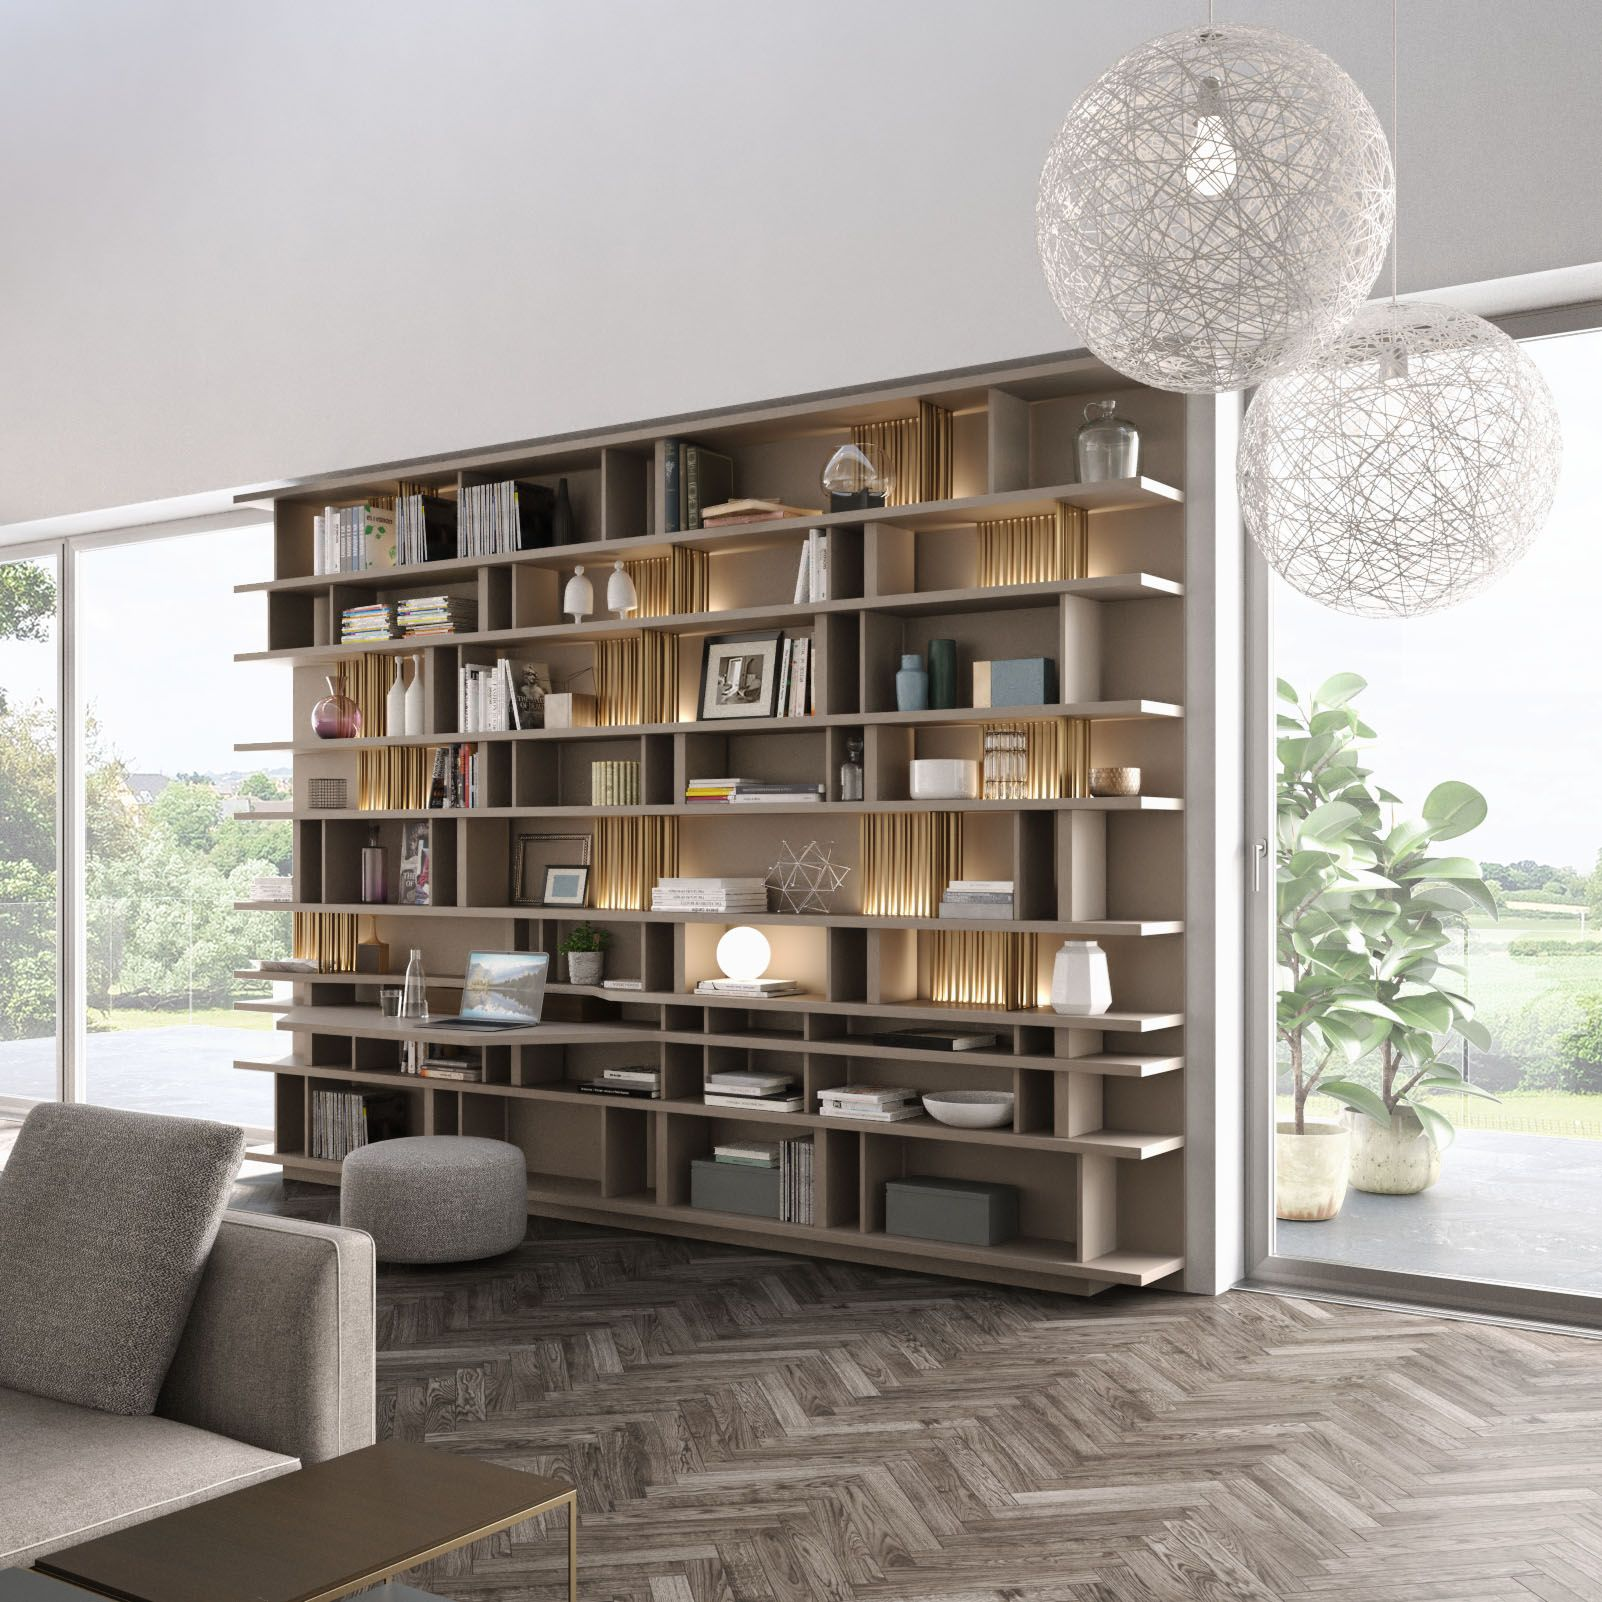 Libreria Room Divider Is A Highly Flexible Wall Mounted Open Shelf Library System Designed To Enhance Any Wall Storage Cabinets Wall Storage Modern Shelving